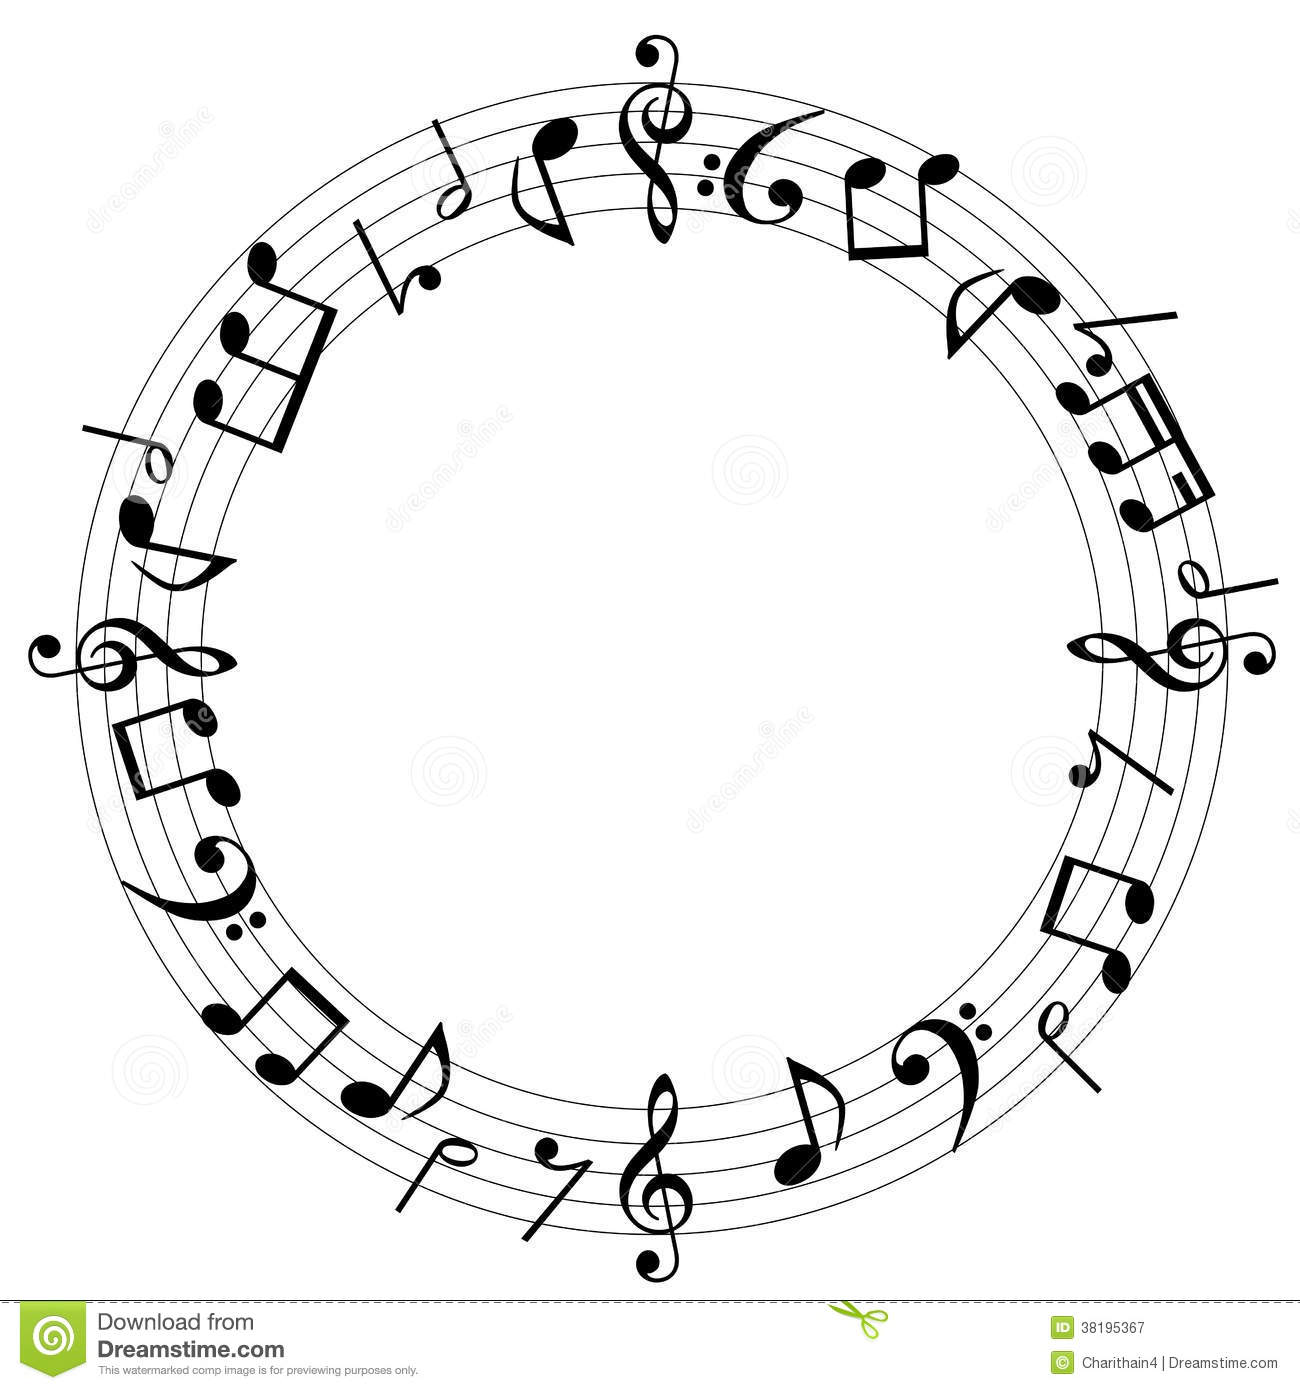 Music Search Sheet Music, Songbooks, Music Books, Sheet Music Downloads, Music Software, and Instruction Products for All Instruments. Music44 is your one-stop shop to find all the best selections of sheet music, sheet music downloads, songbooks, music books and software for all instruments.